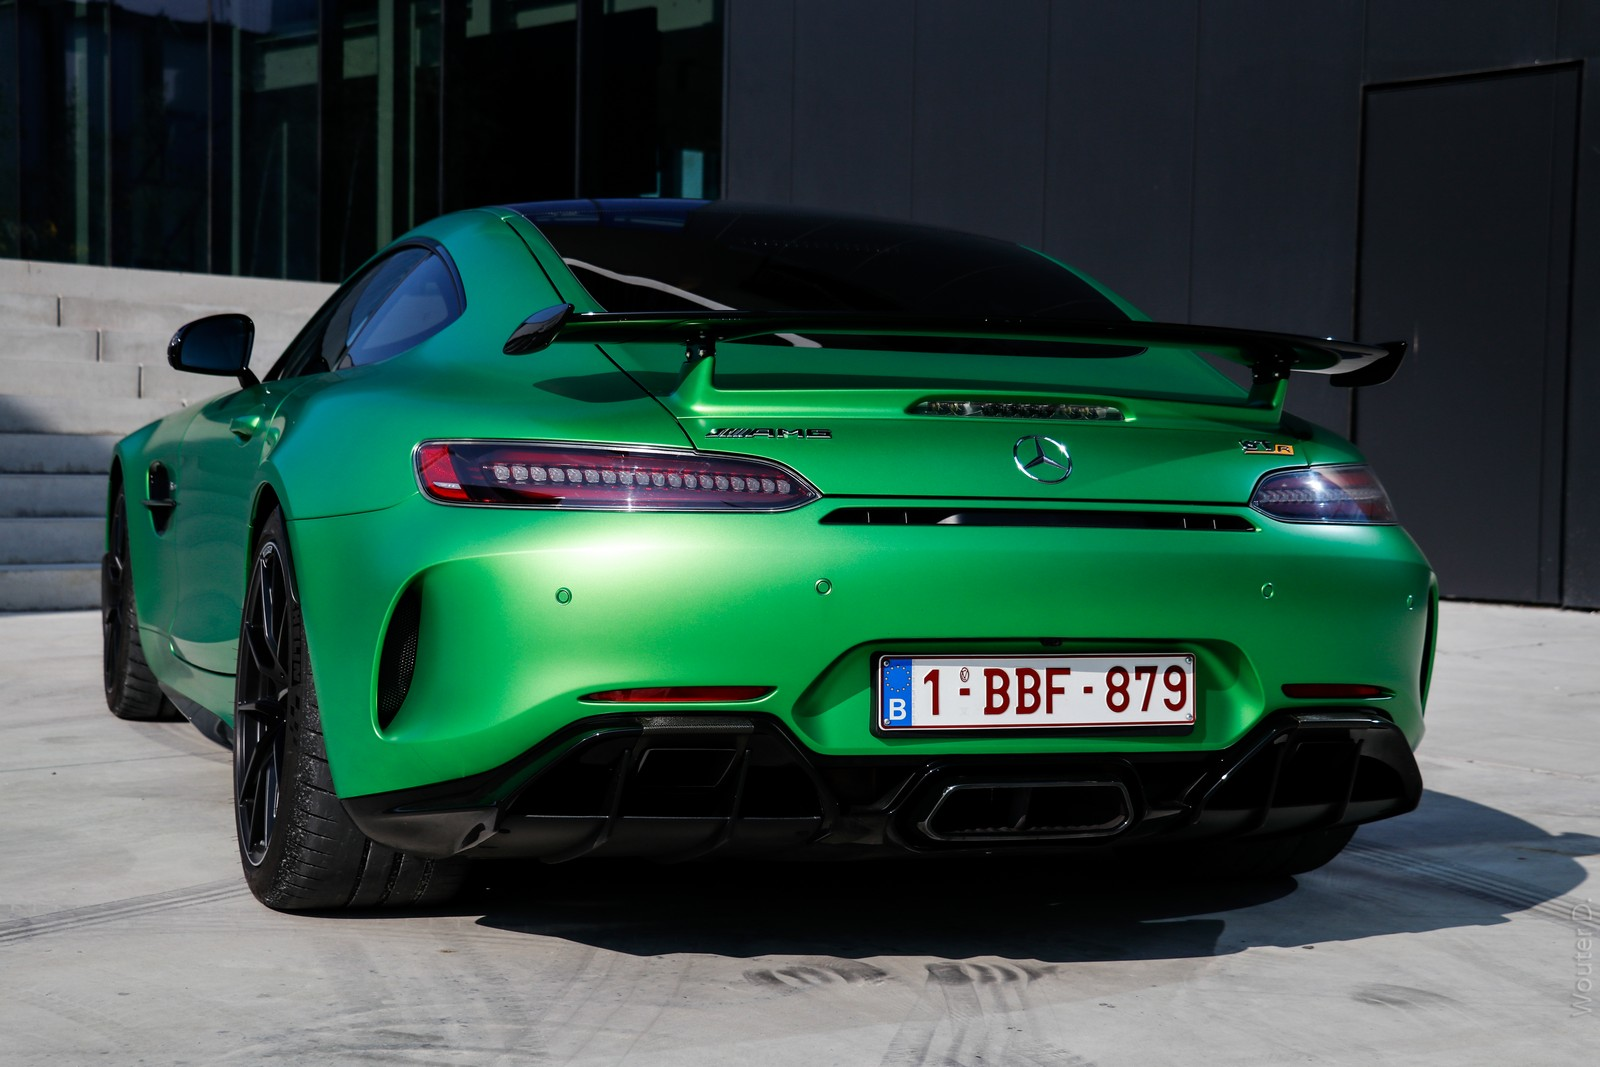 Mercedes AMG GT-R Rear Lights